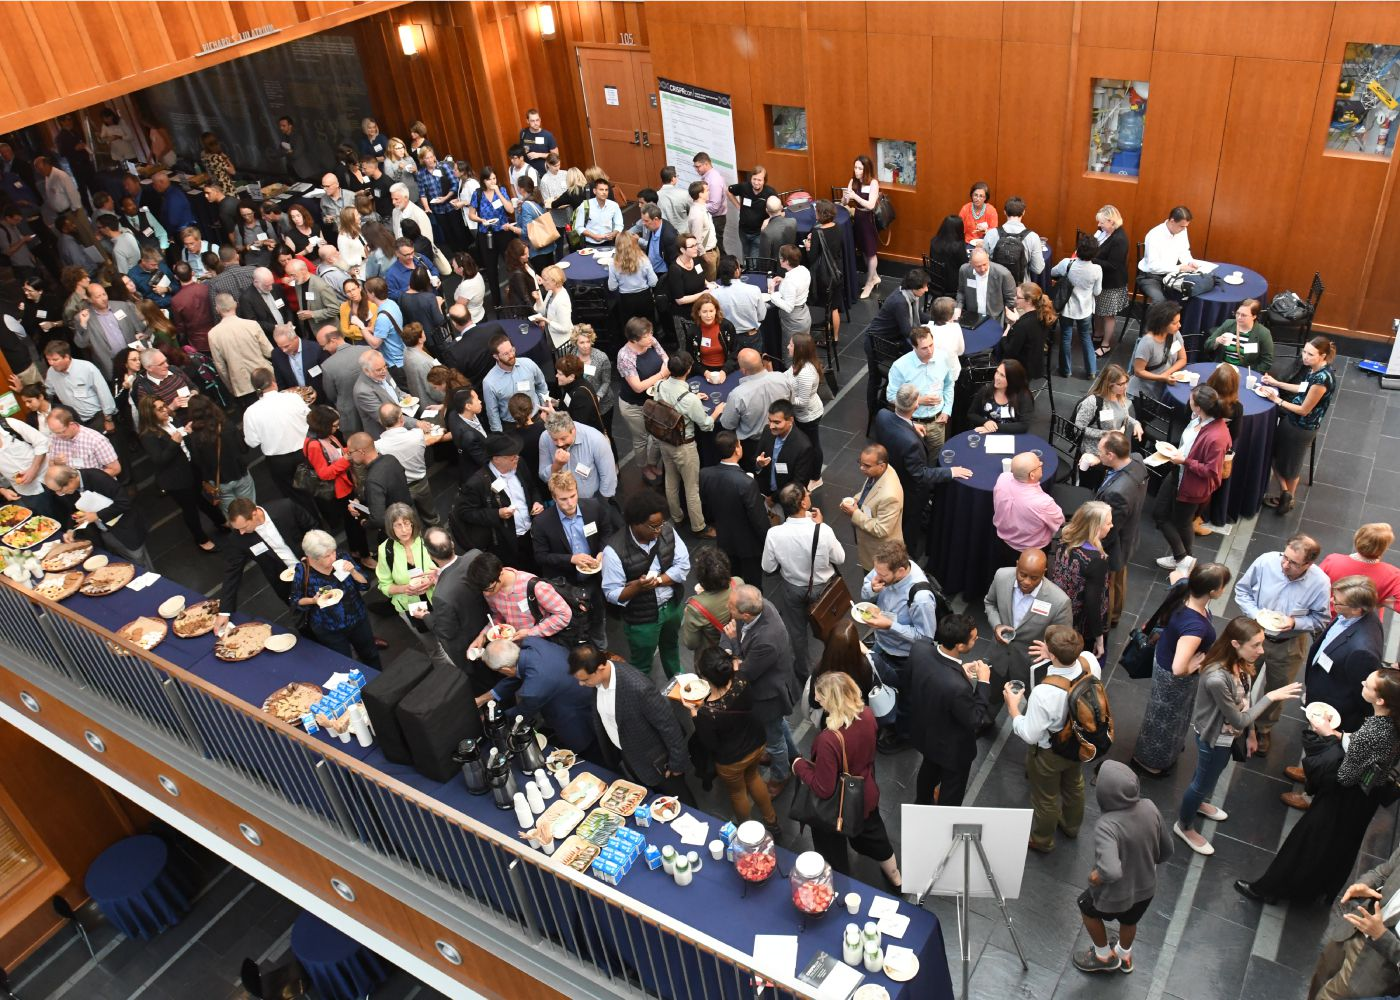 A view from above the Stanley Hall atrium during CRISPRcon